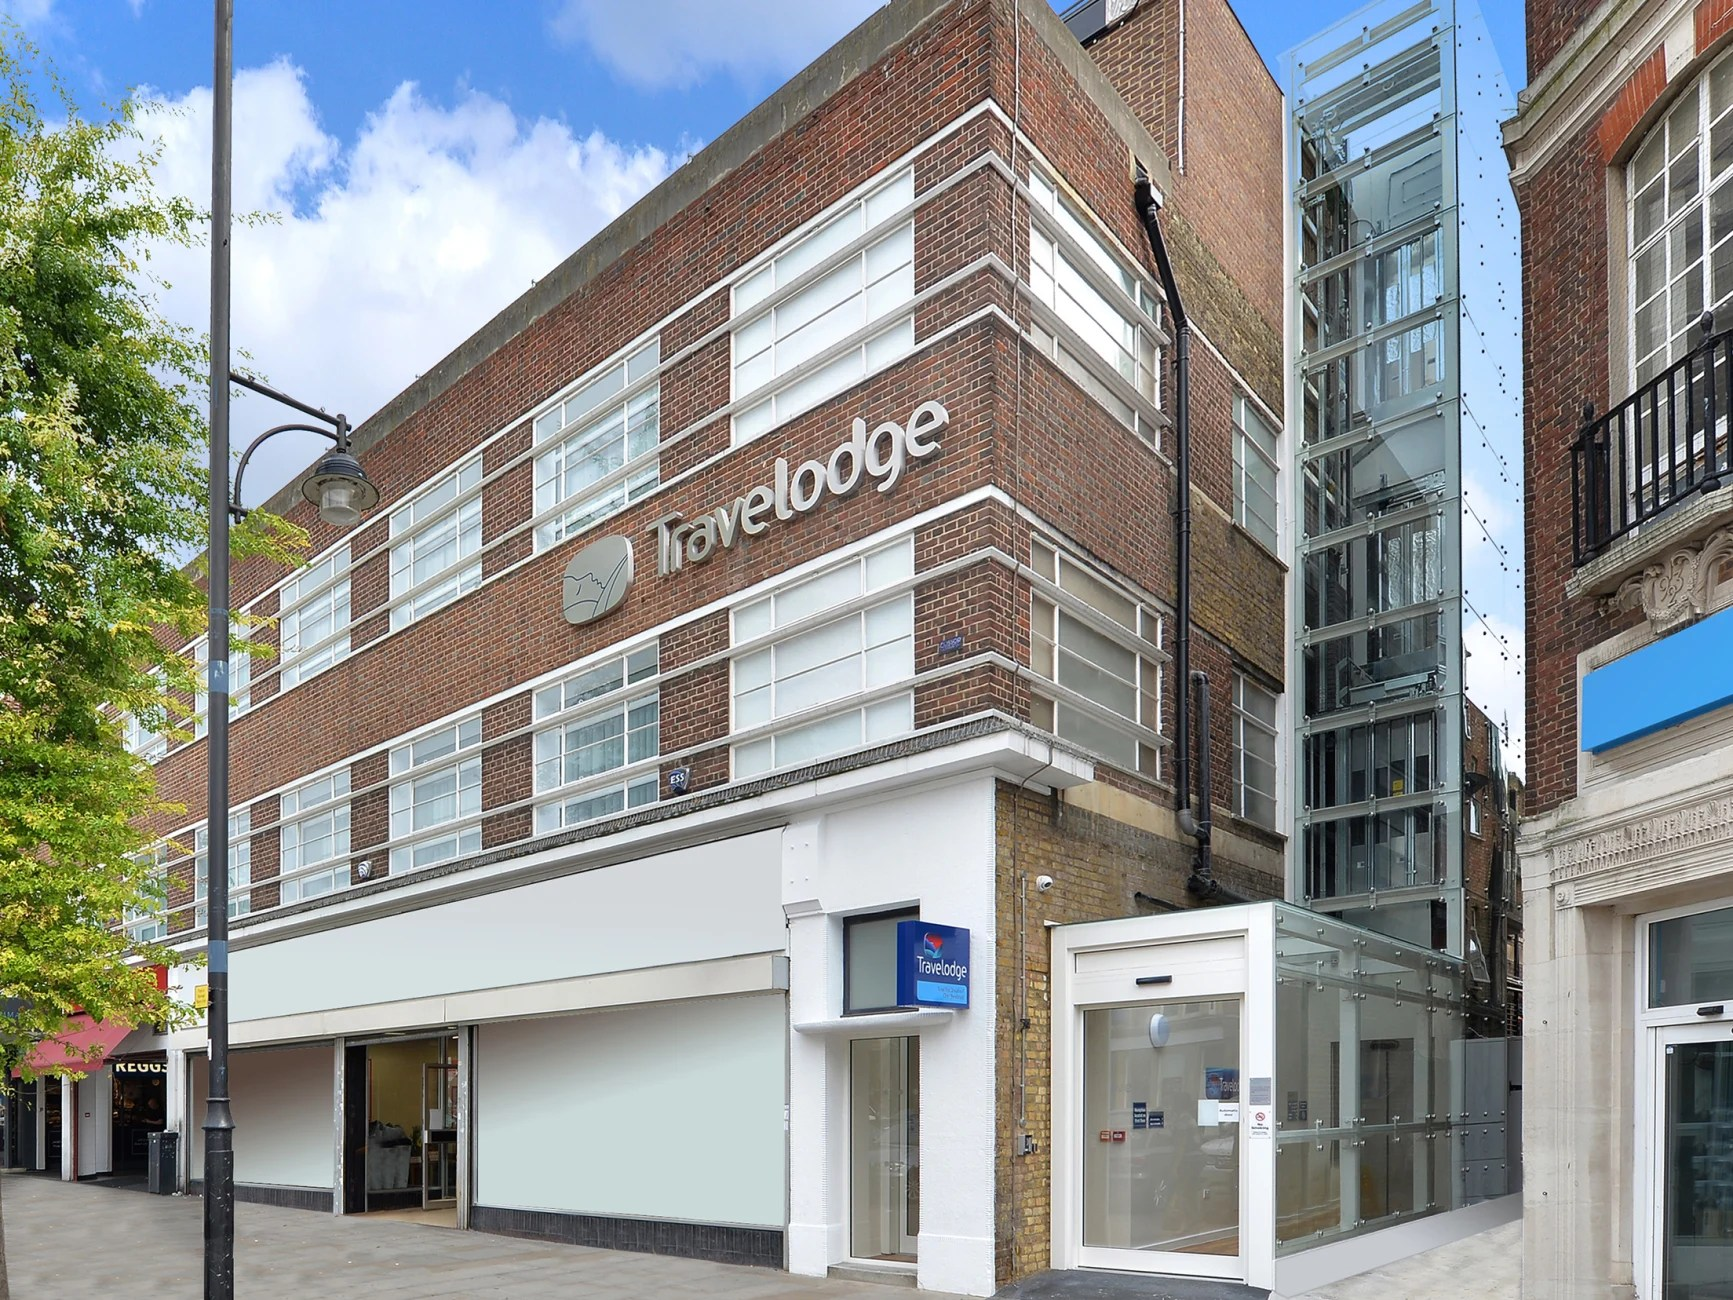 Bed And Breakfast Romford Hotel Travelodge London Romford The Quadrant Romford Trivago Ie